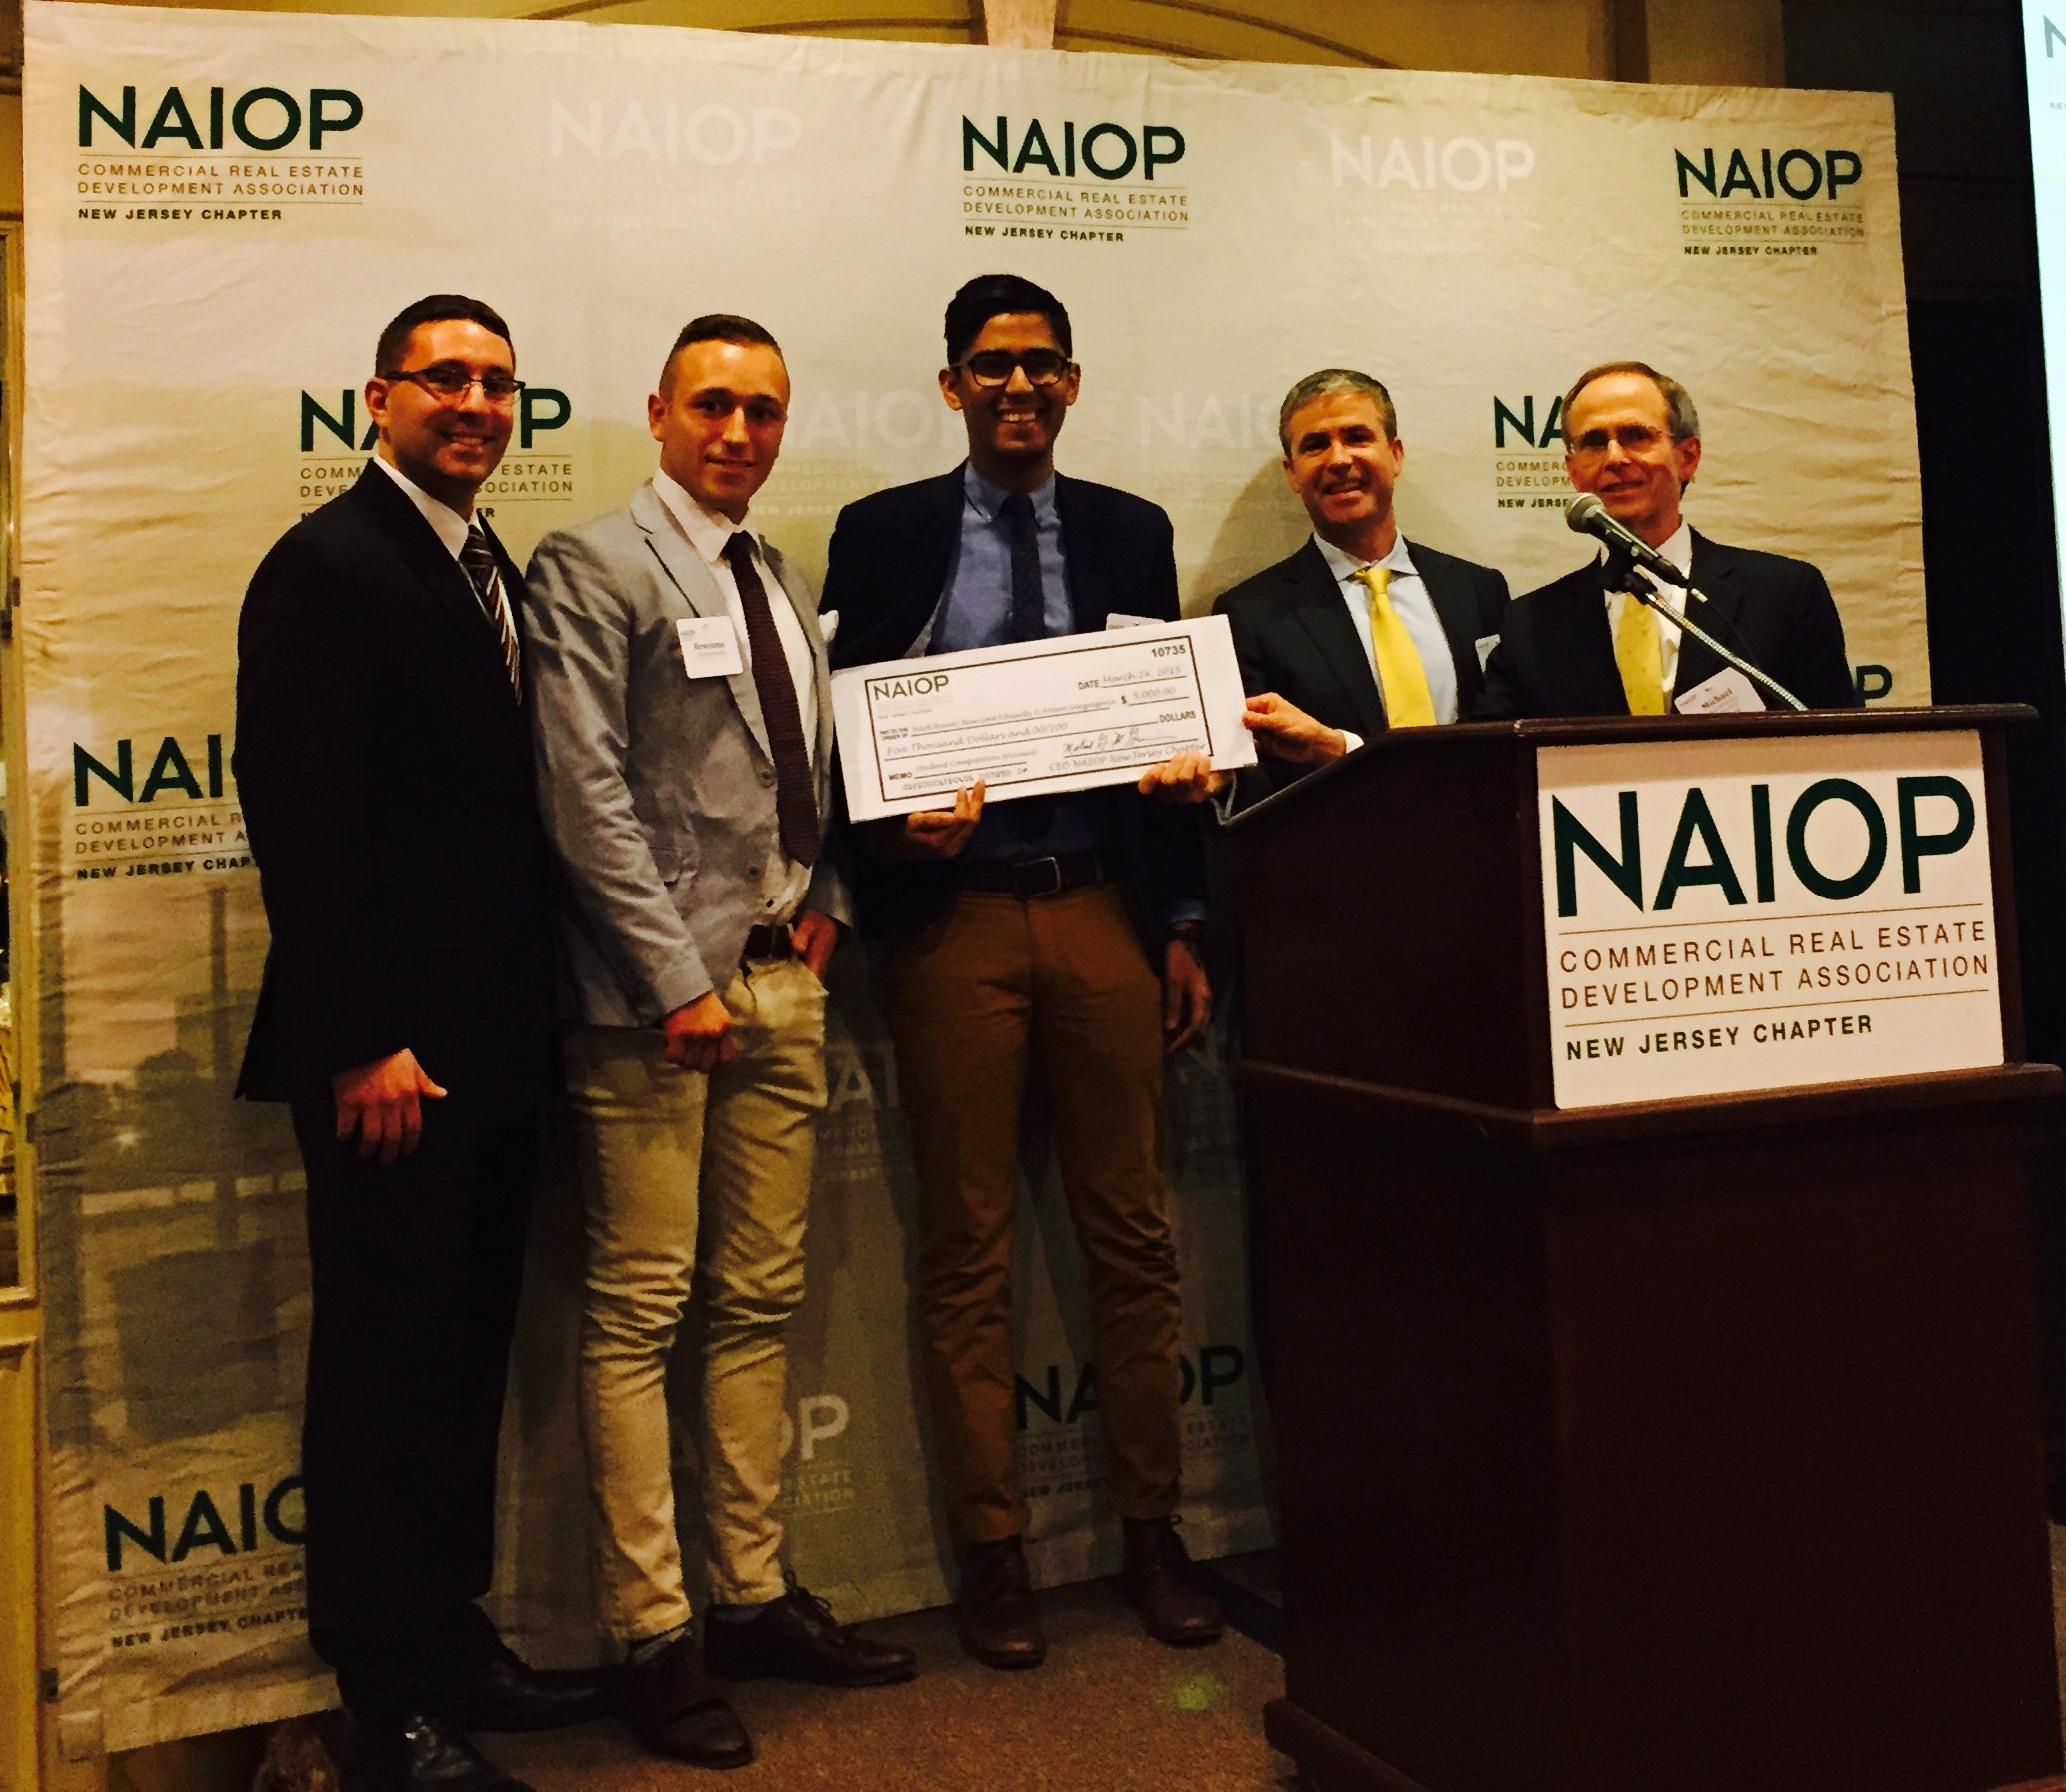 Dinosaurs to Diamonds Student Challenge winners Arturo Sangregorio, Newcome Edwards and Mark Bauer accept their $5,000 prize from NAIOP NJ VP Dave Gibbons (Elberon Development Group) and CEO Mike McGuinness (Photo courtesy NAIOP NJ)